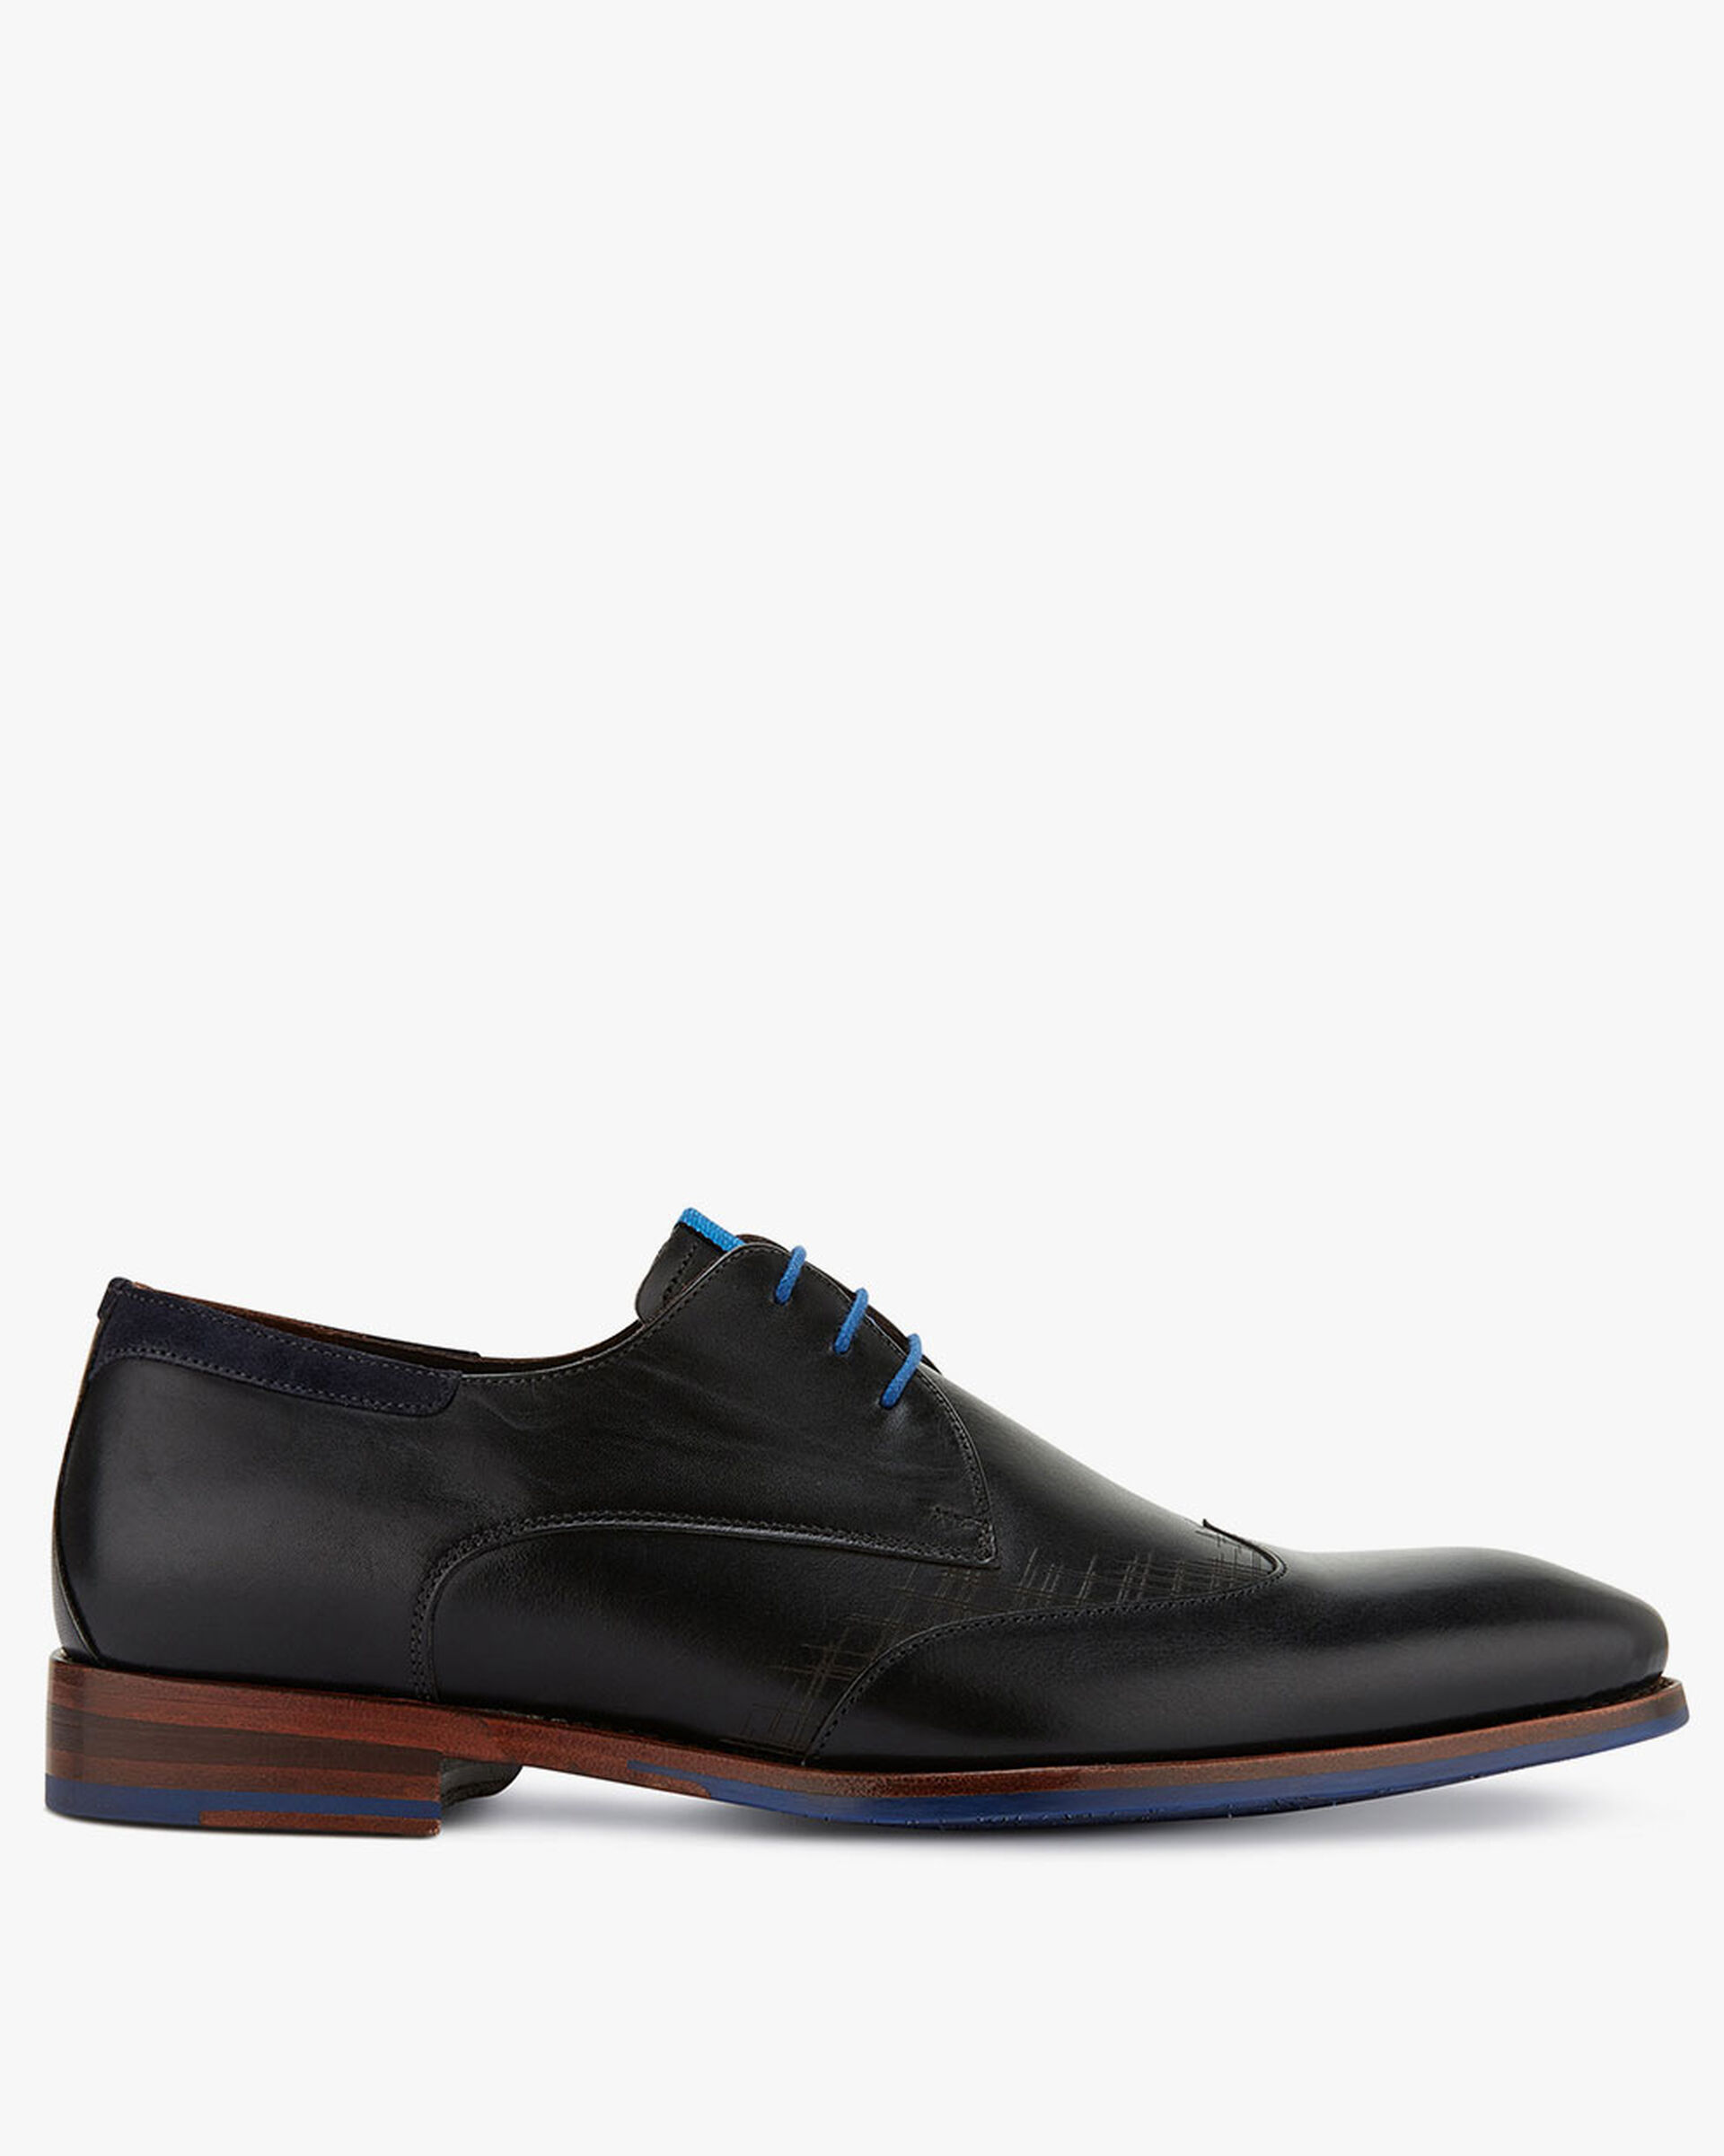 Black lace shoe made of calf's leather